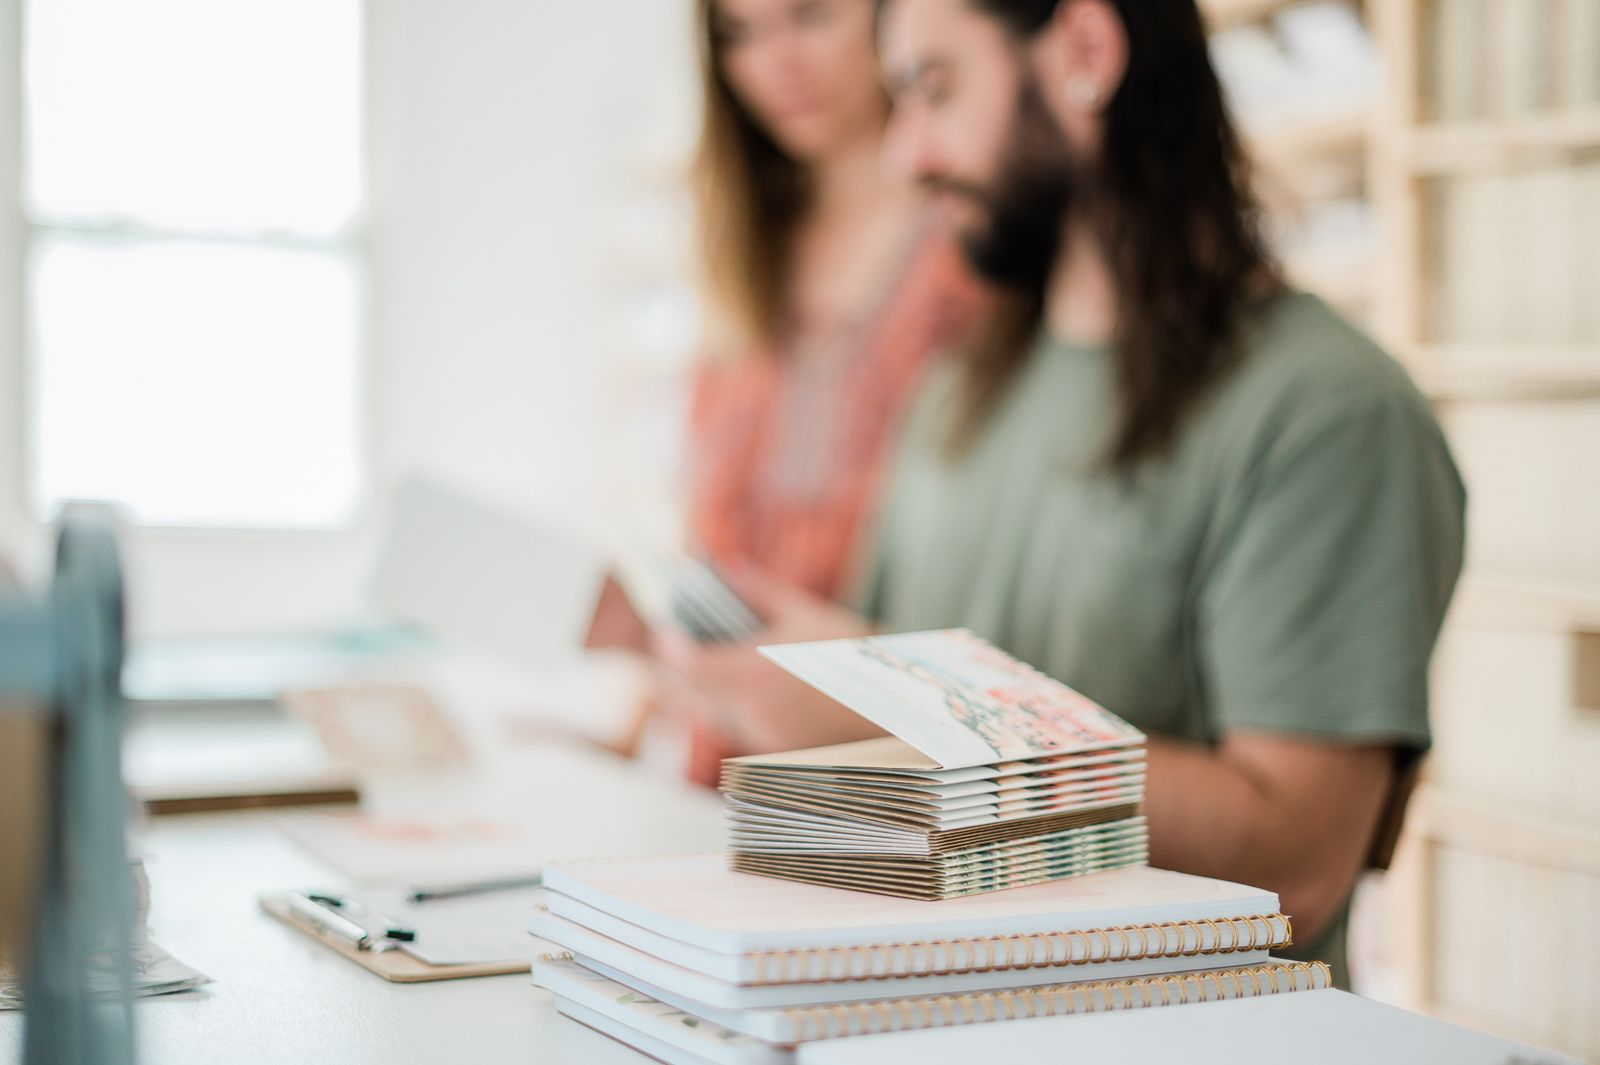 Justin and Taylor, owners of Pen + Pillar work at a table behind a stack of notebooks.